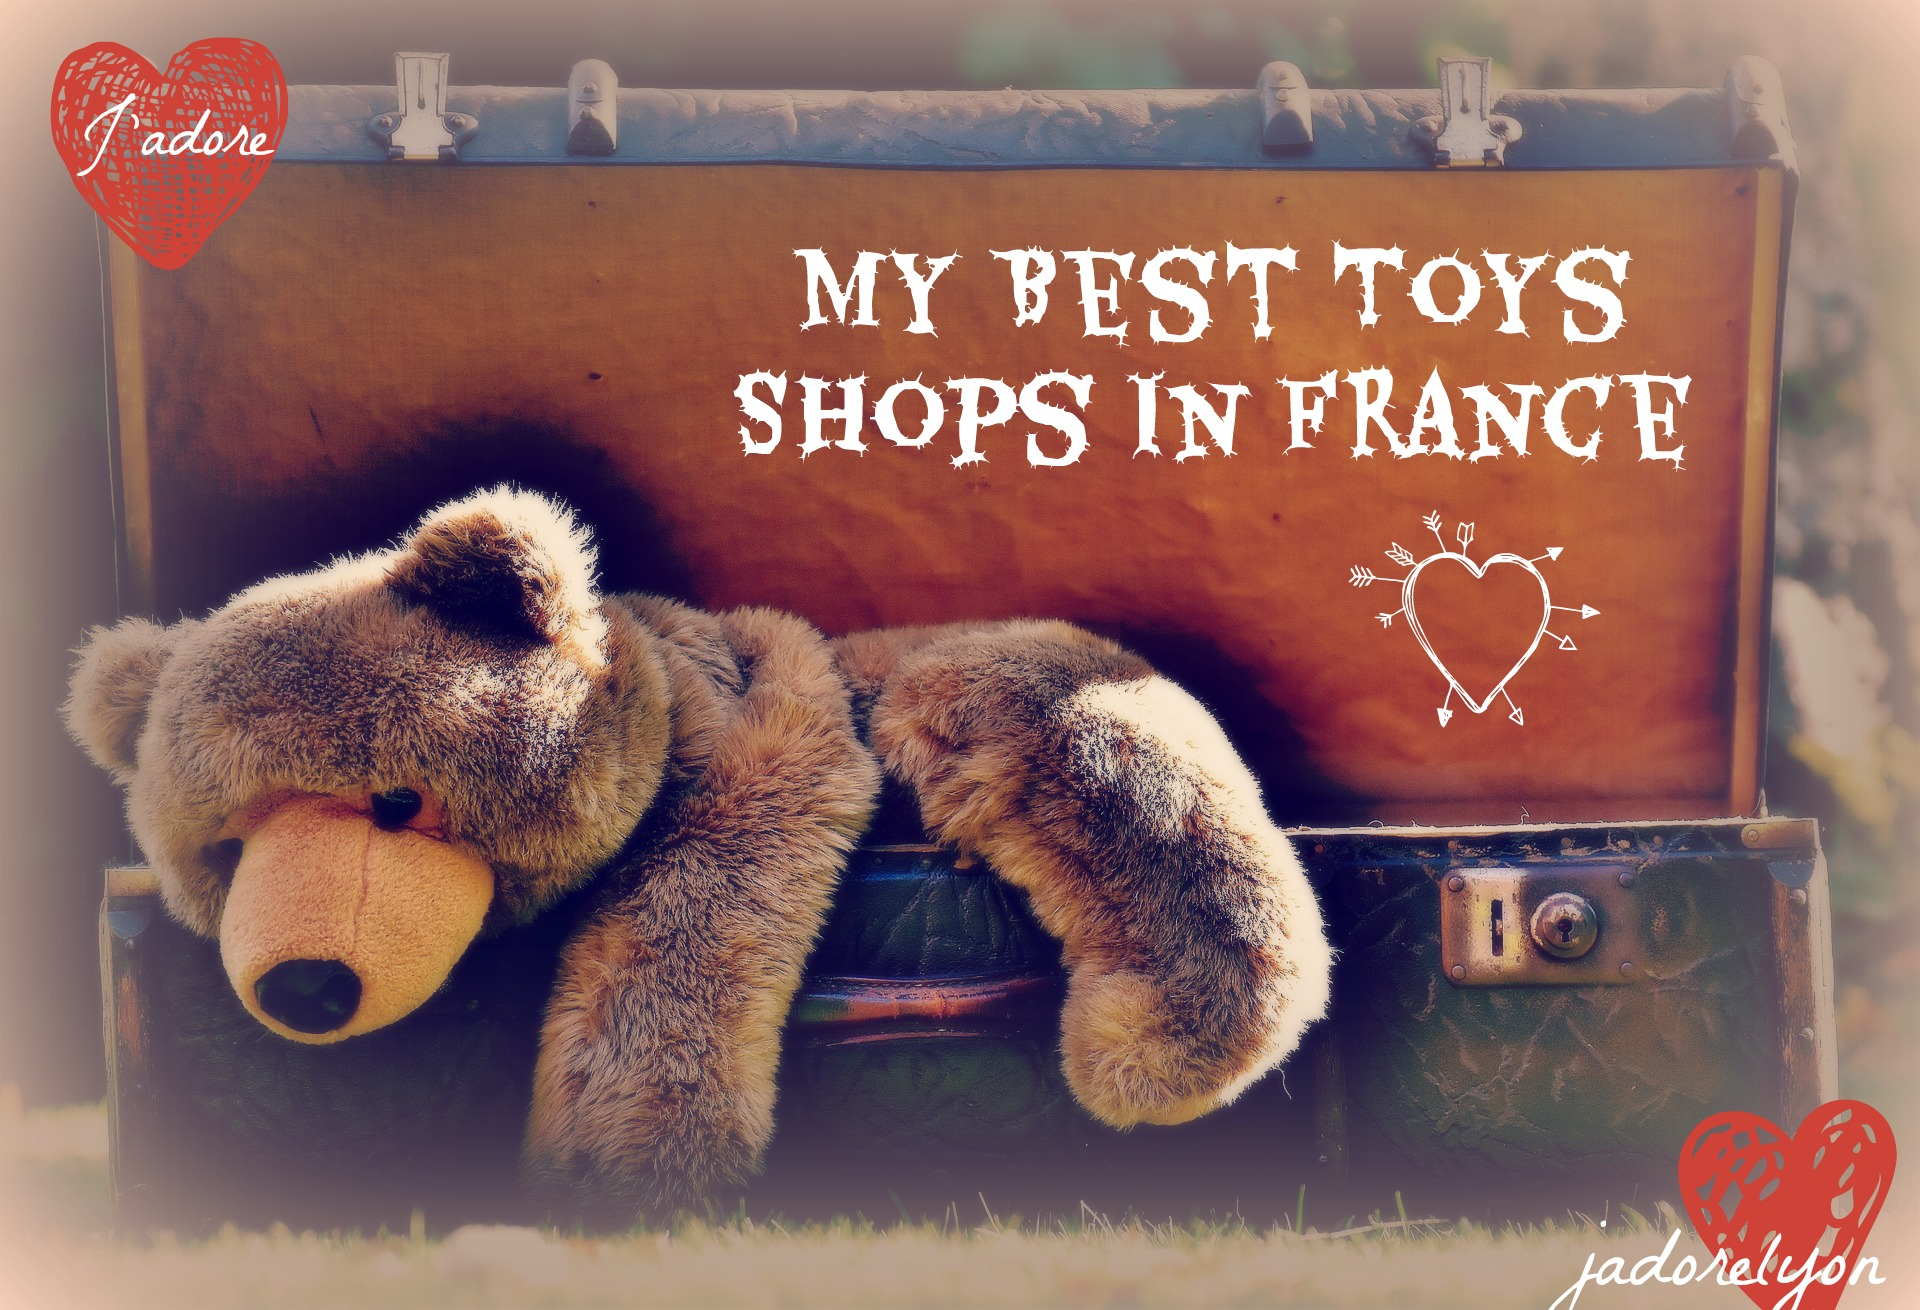 So French So Good Toys & Kids Shops and Brands So French So Good Toys & Kids Shops and Brands